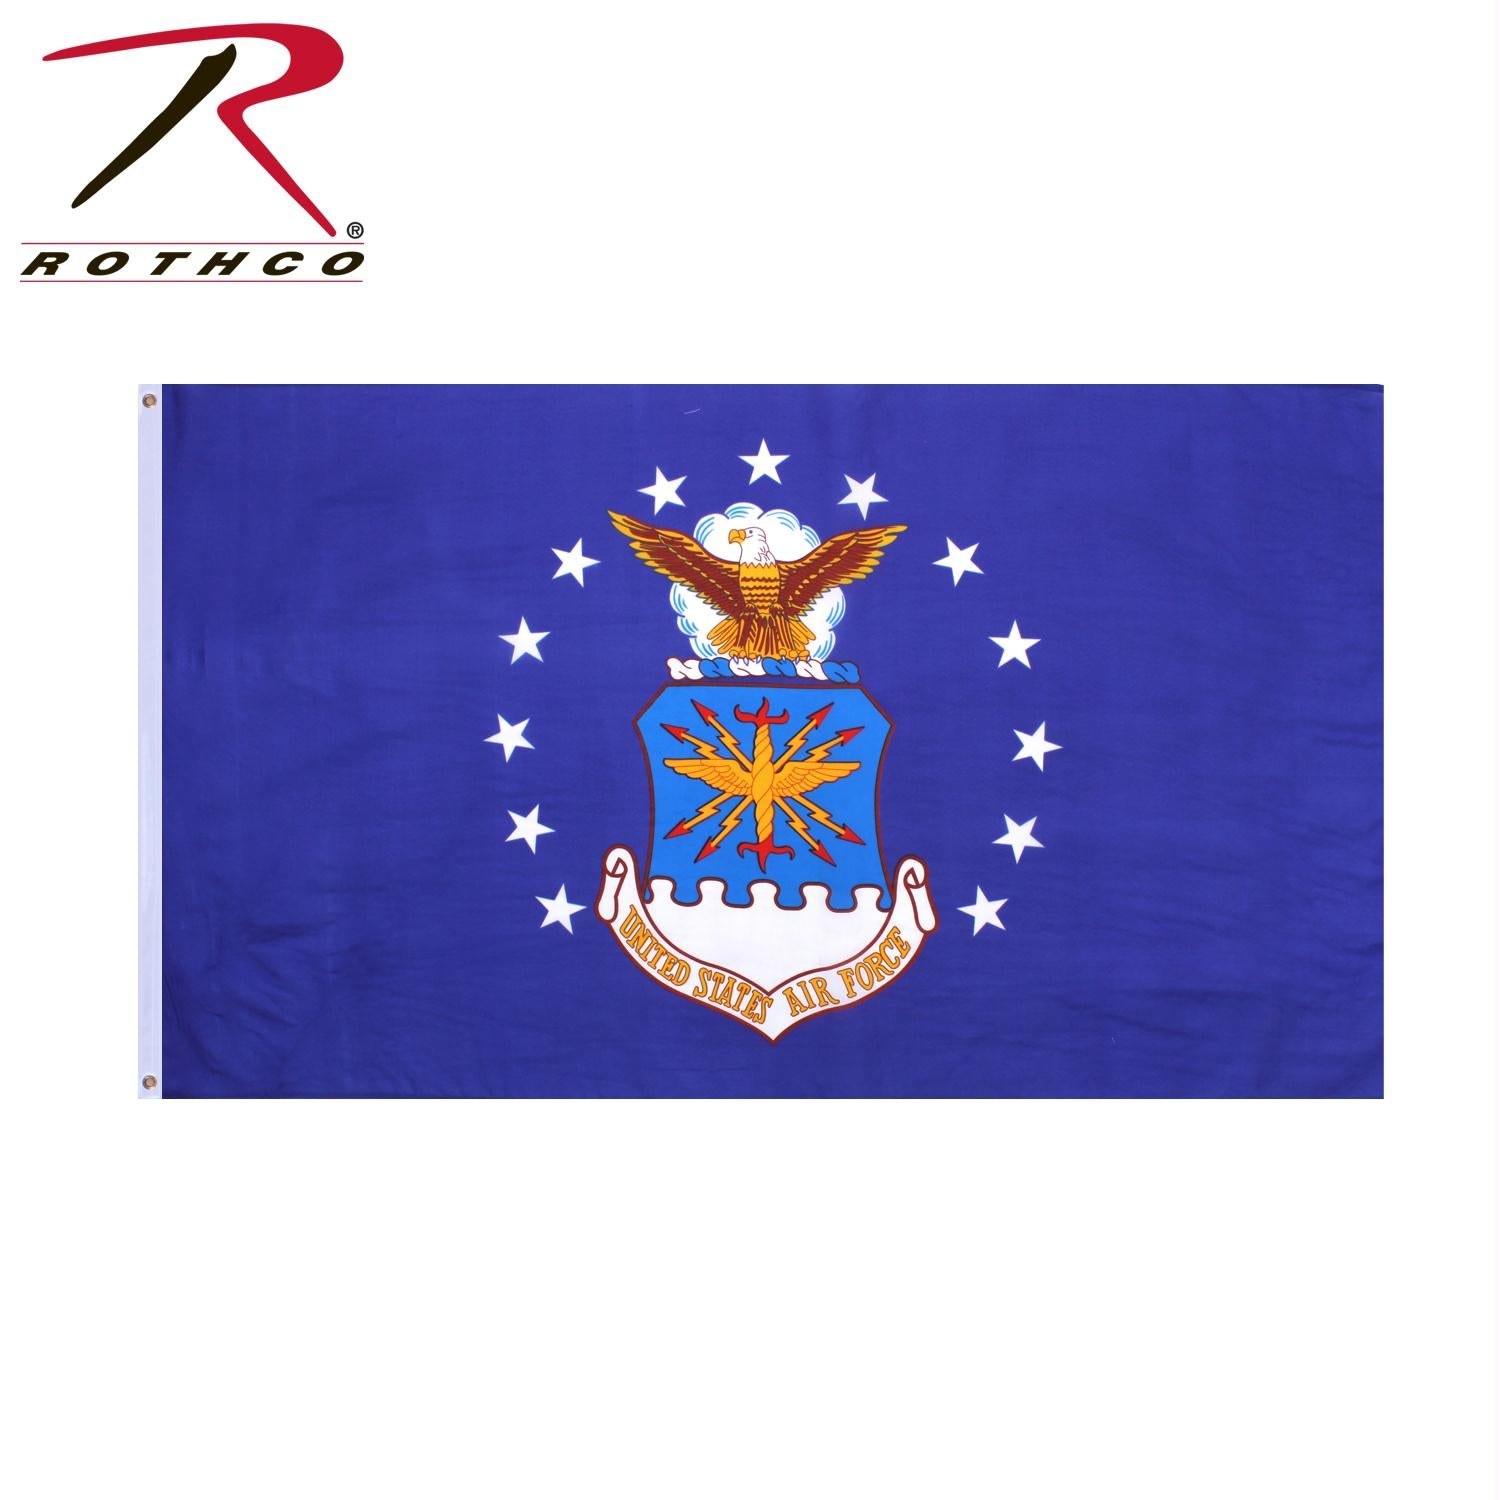 Rothco U.S. Air Force Emblem Flag - Blue / 3